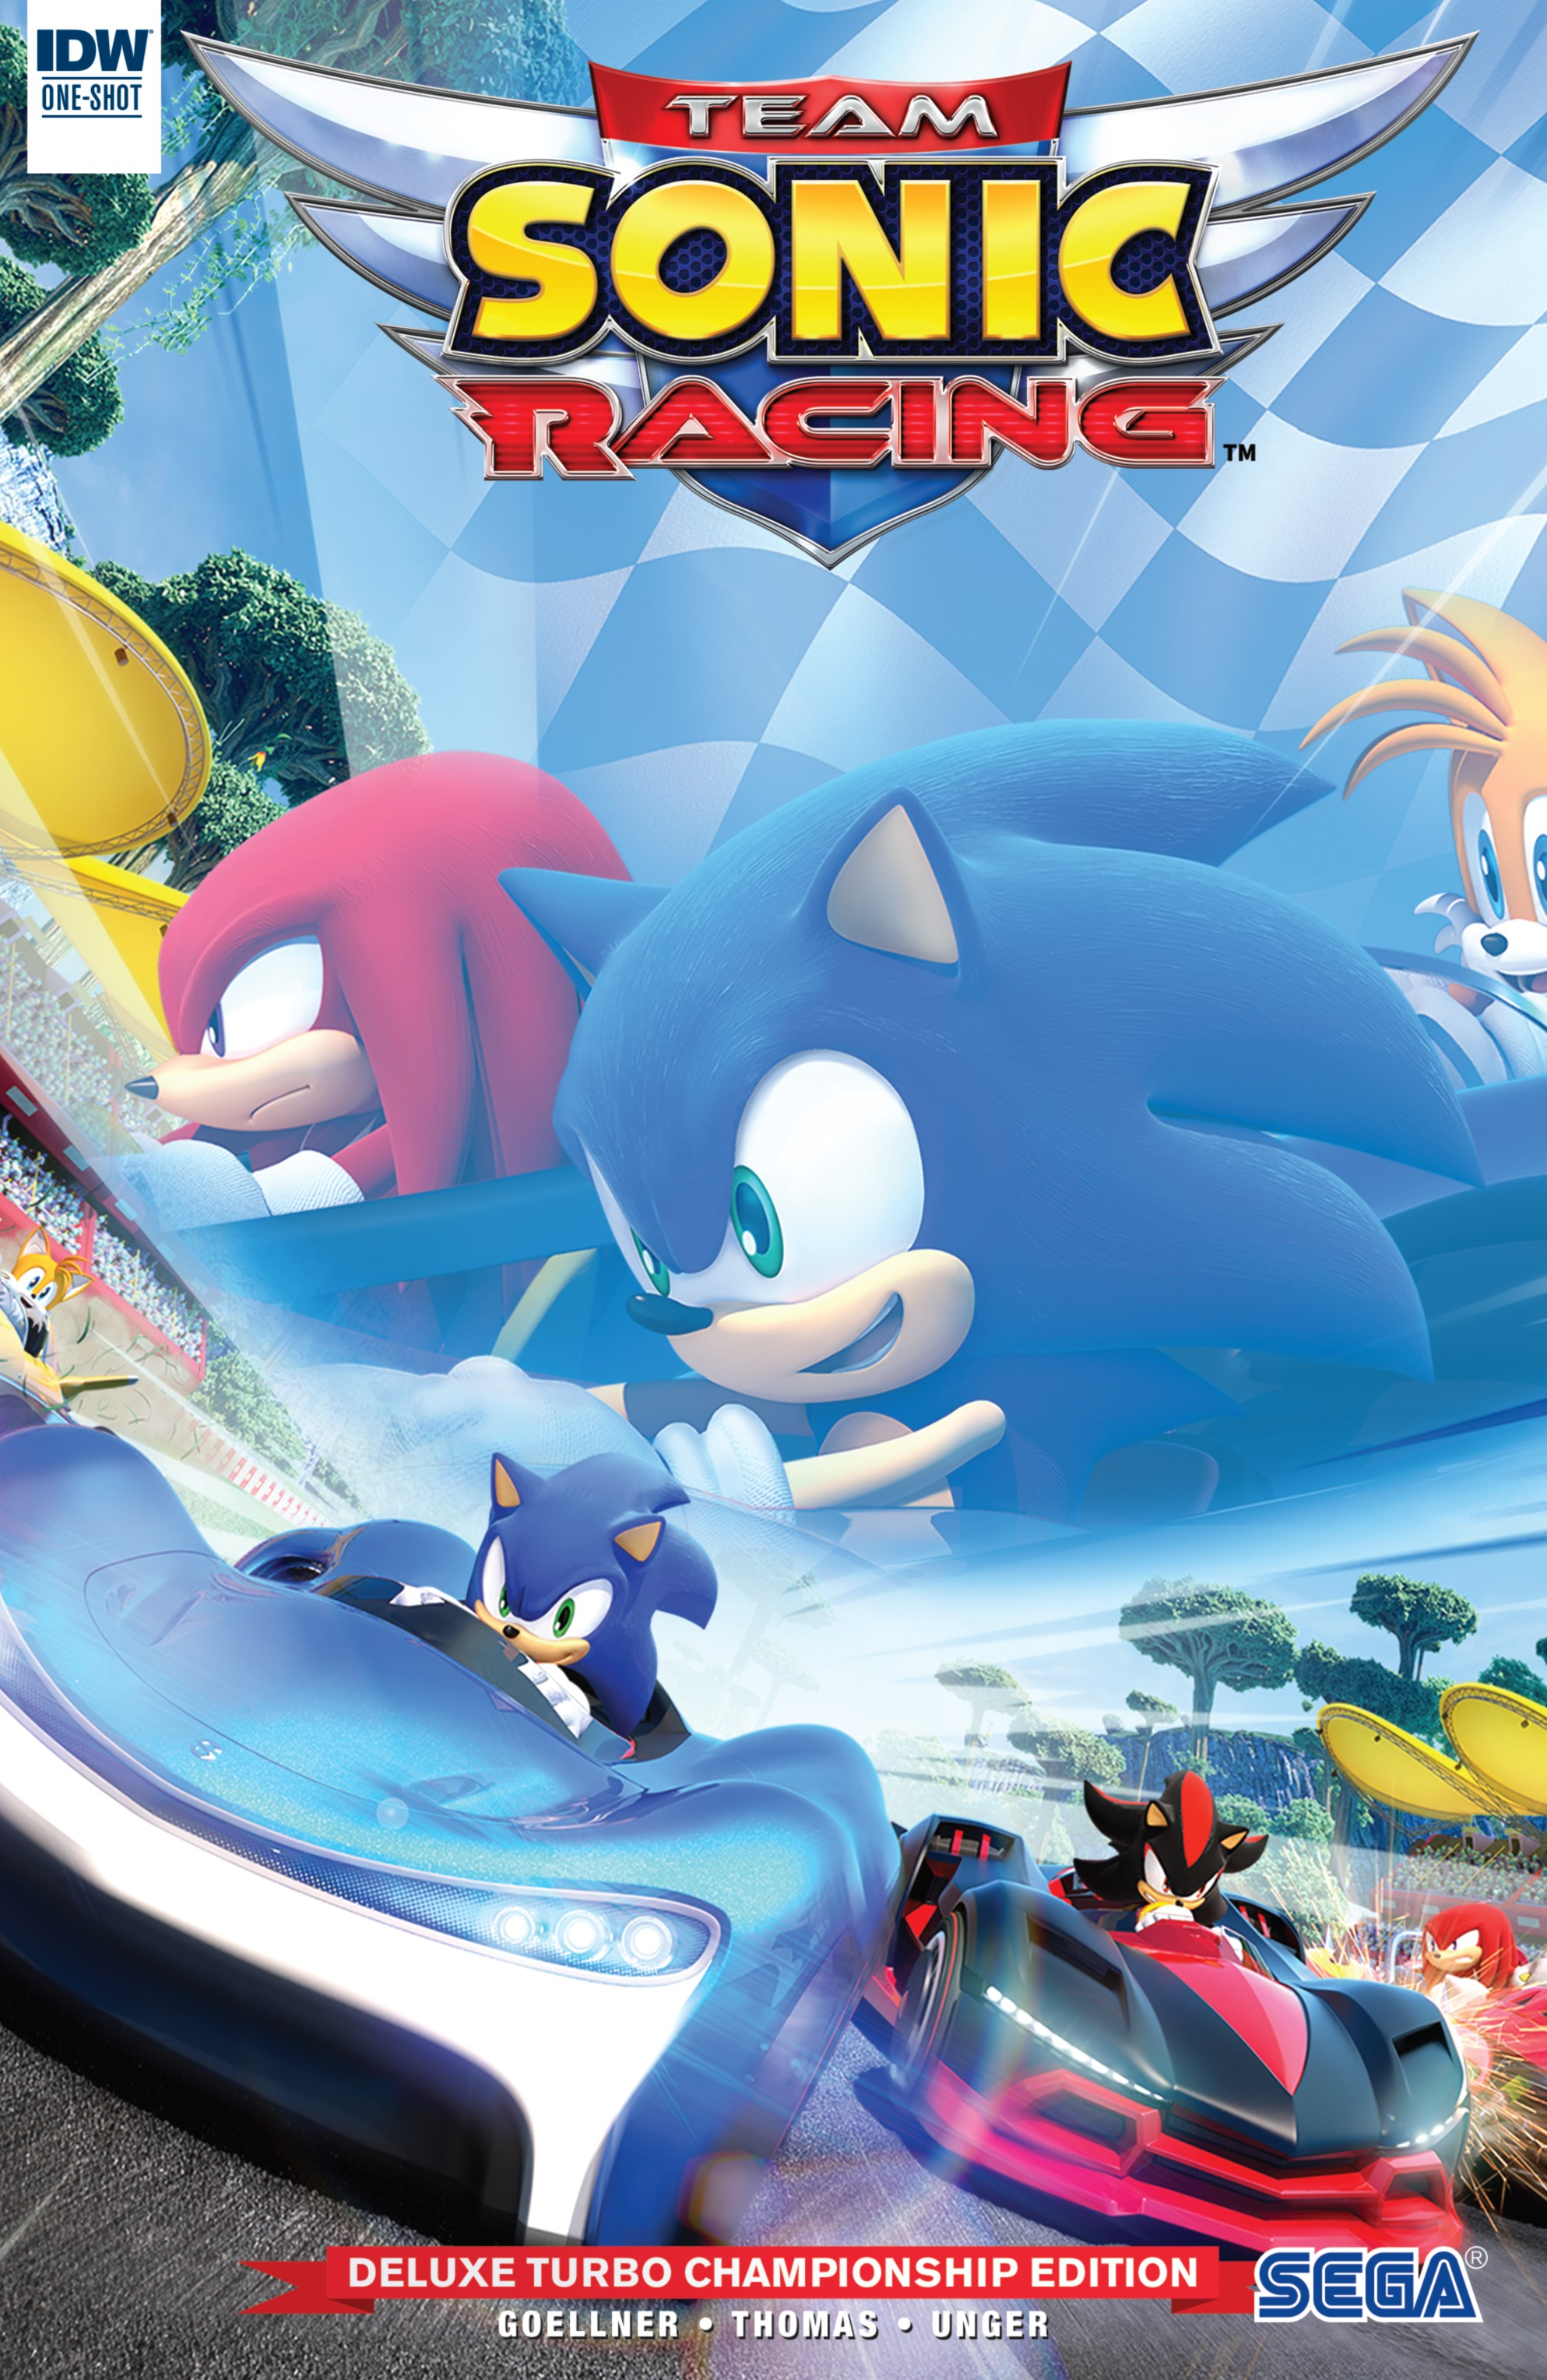 Team Sonic Racing Plus Deluxe Turbo Championship Edition (2019): Chapter 1 - Page 1